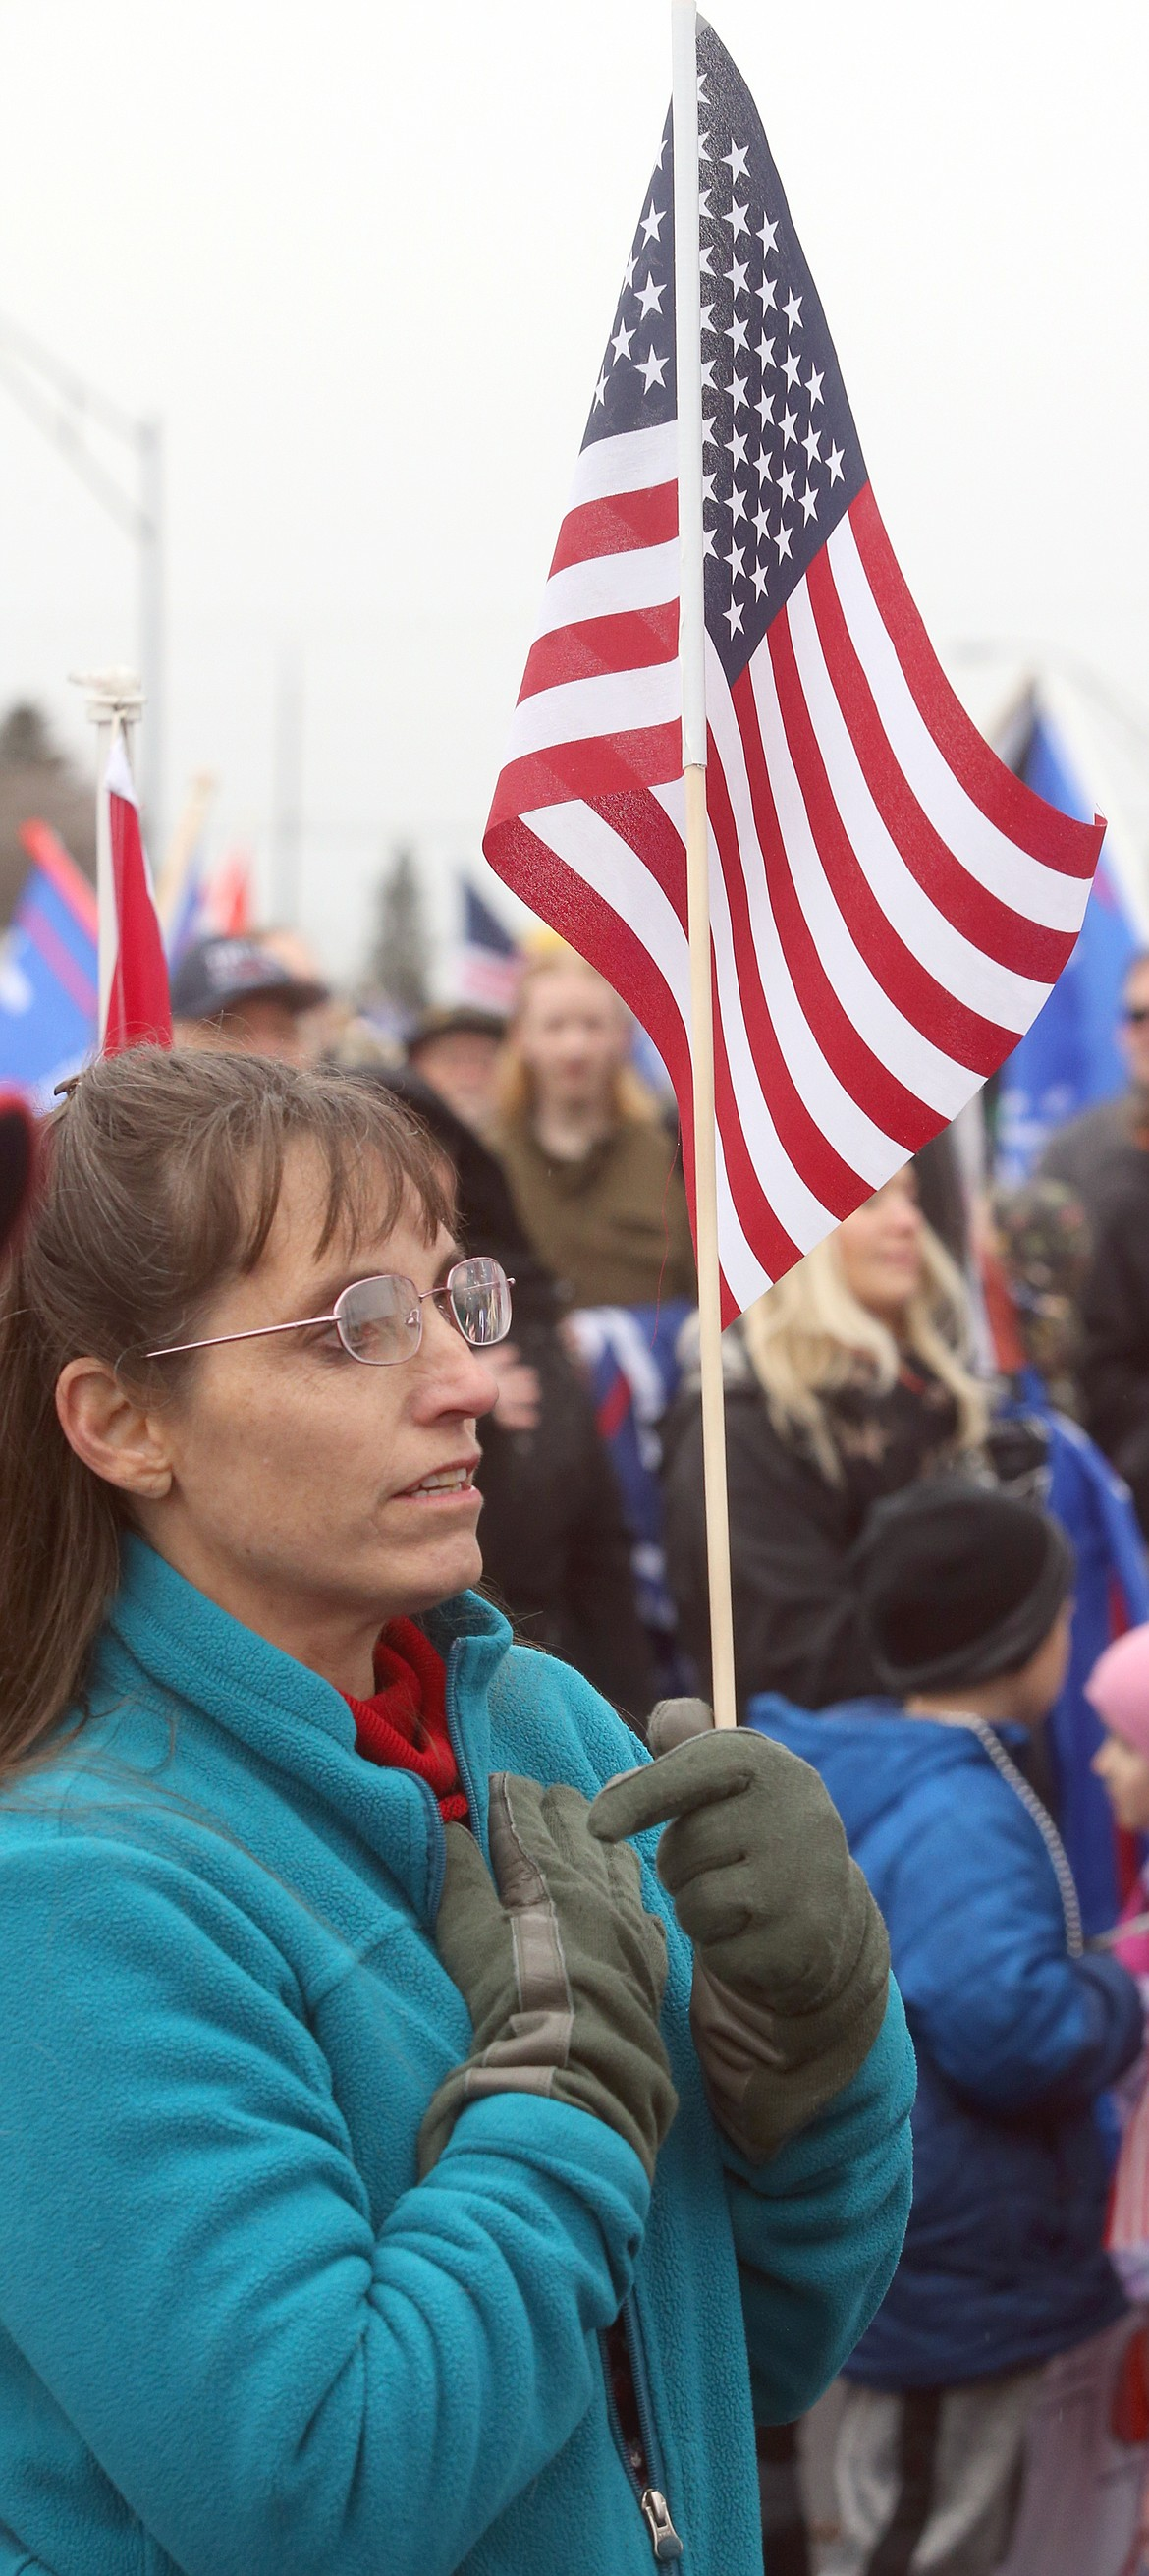 A woman holds her hand to her chest during the Pledge of Allegiance during the rally on Wednesday.